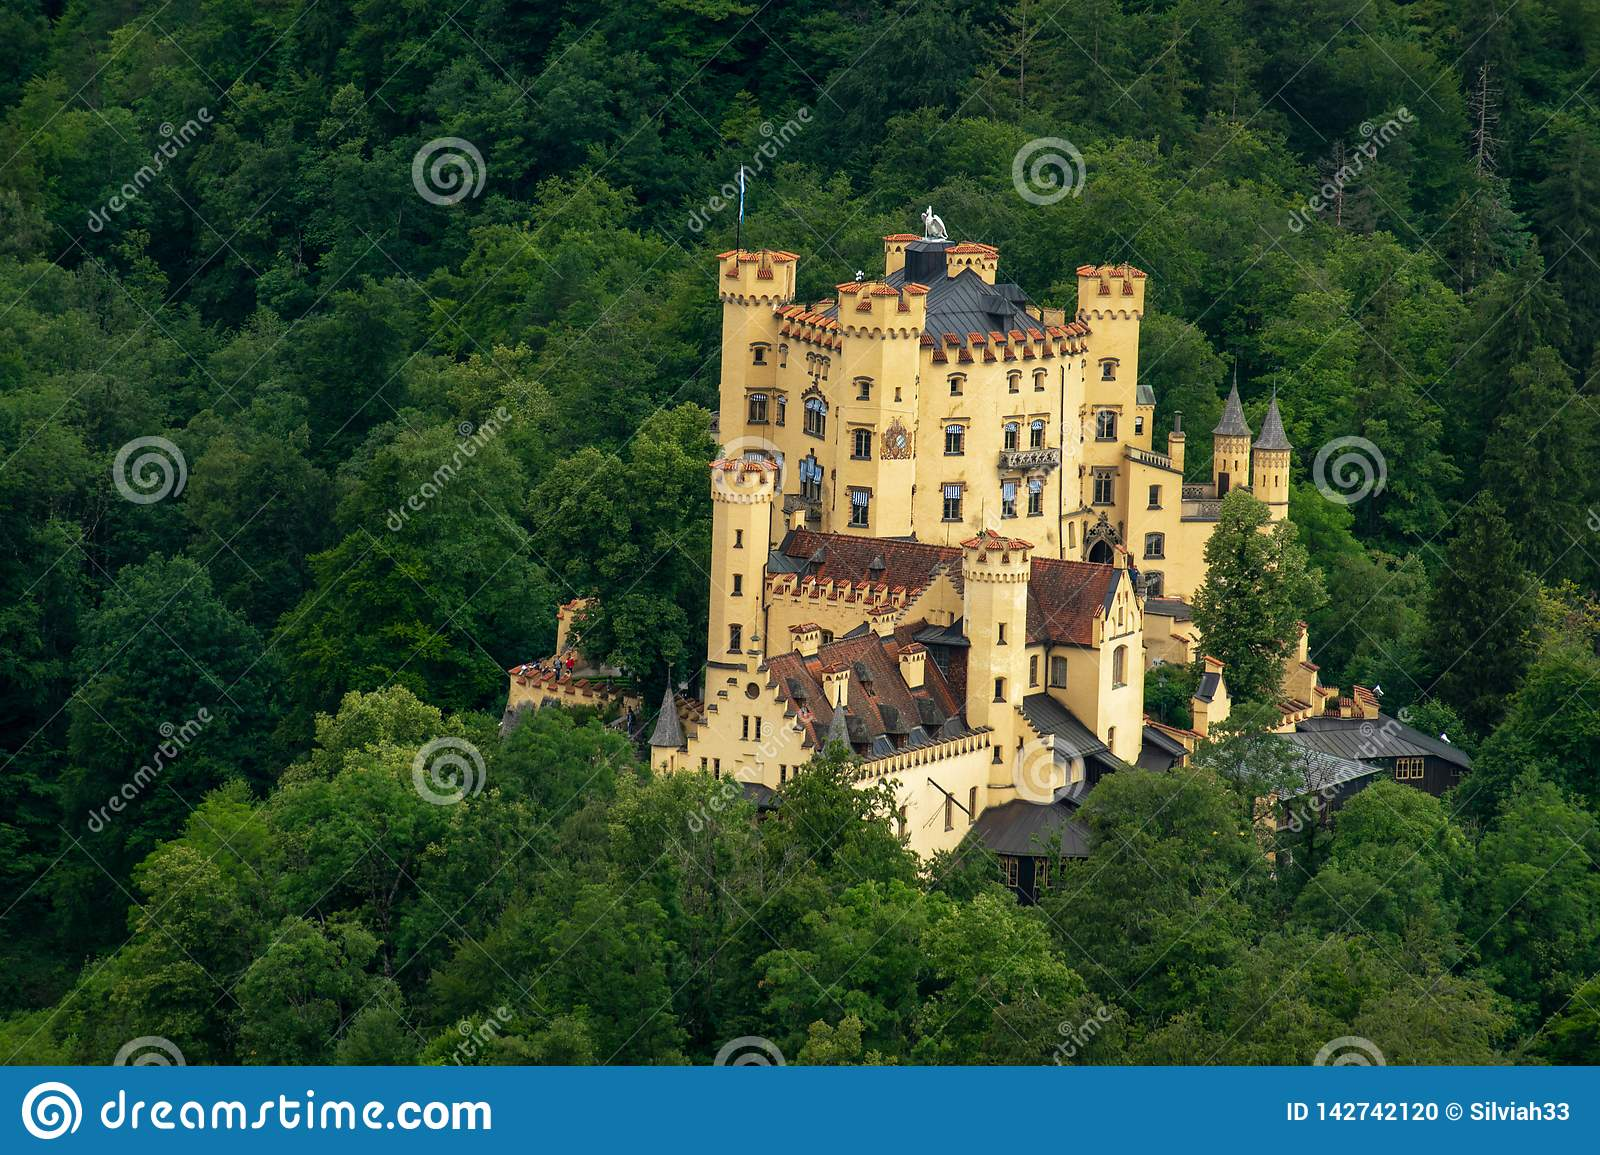 Castello in mezzo ad una foresta in Germania